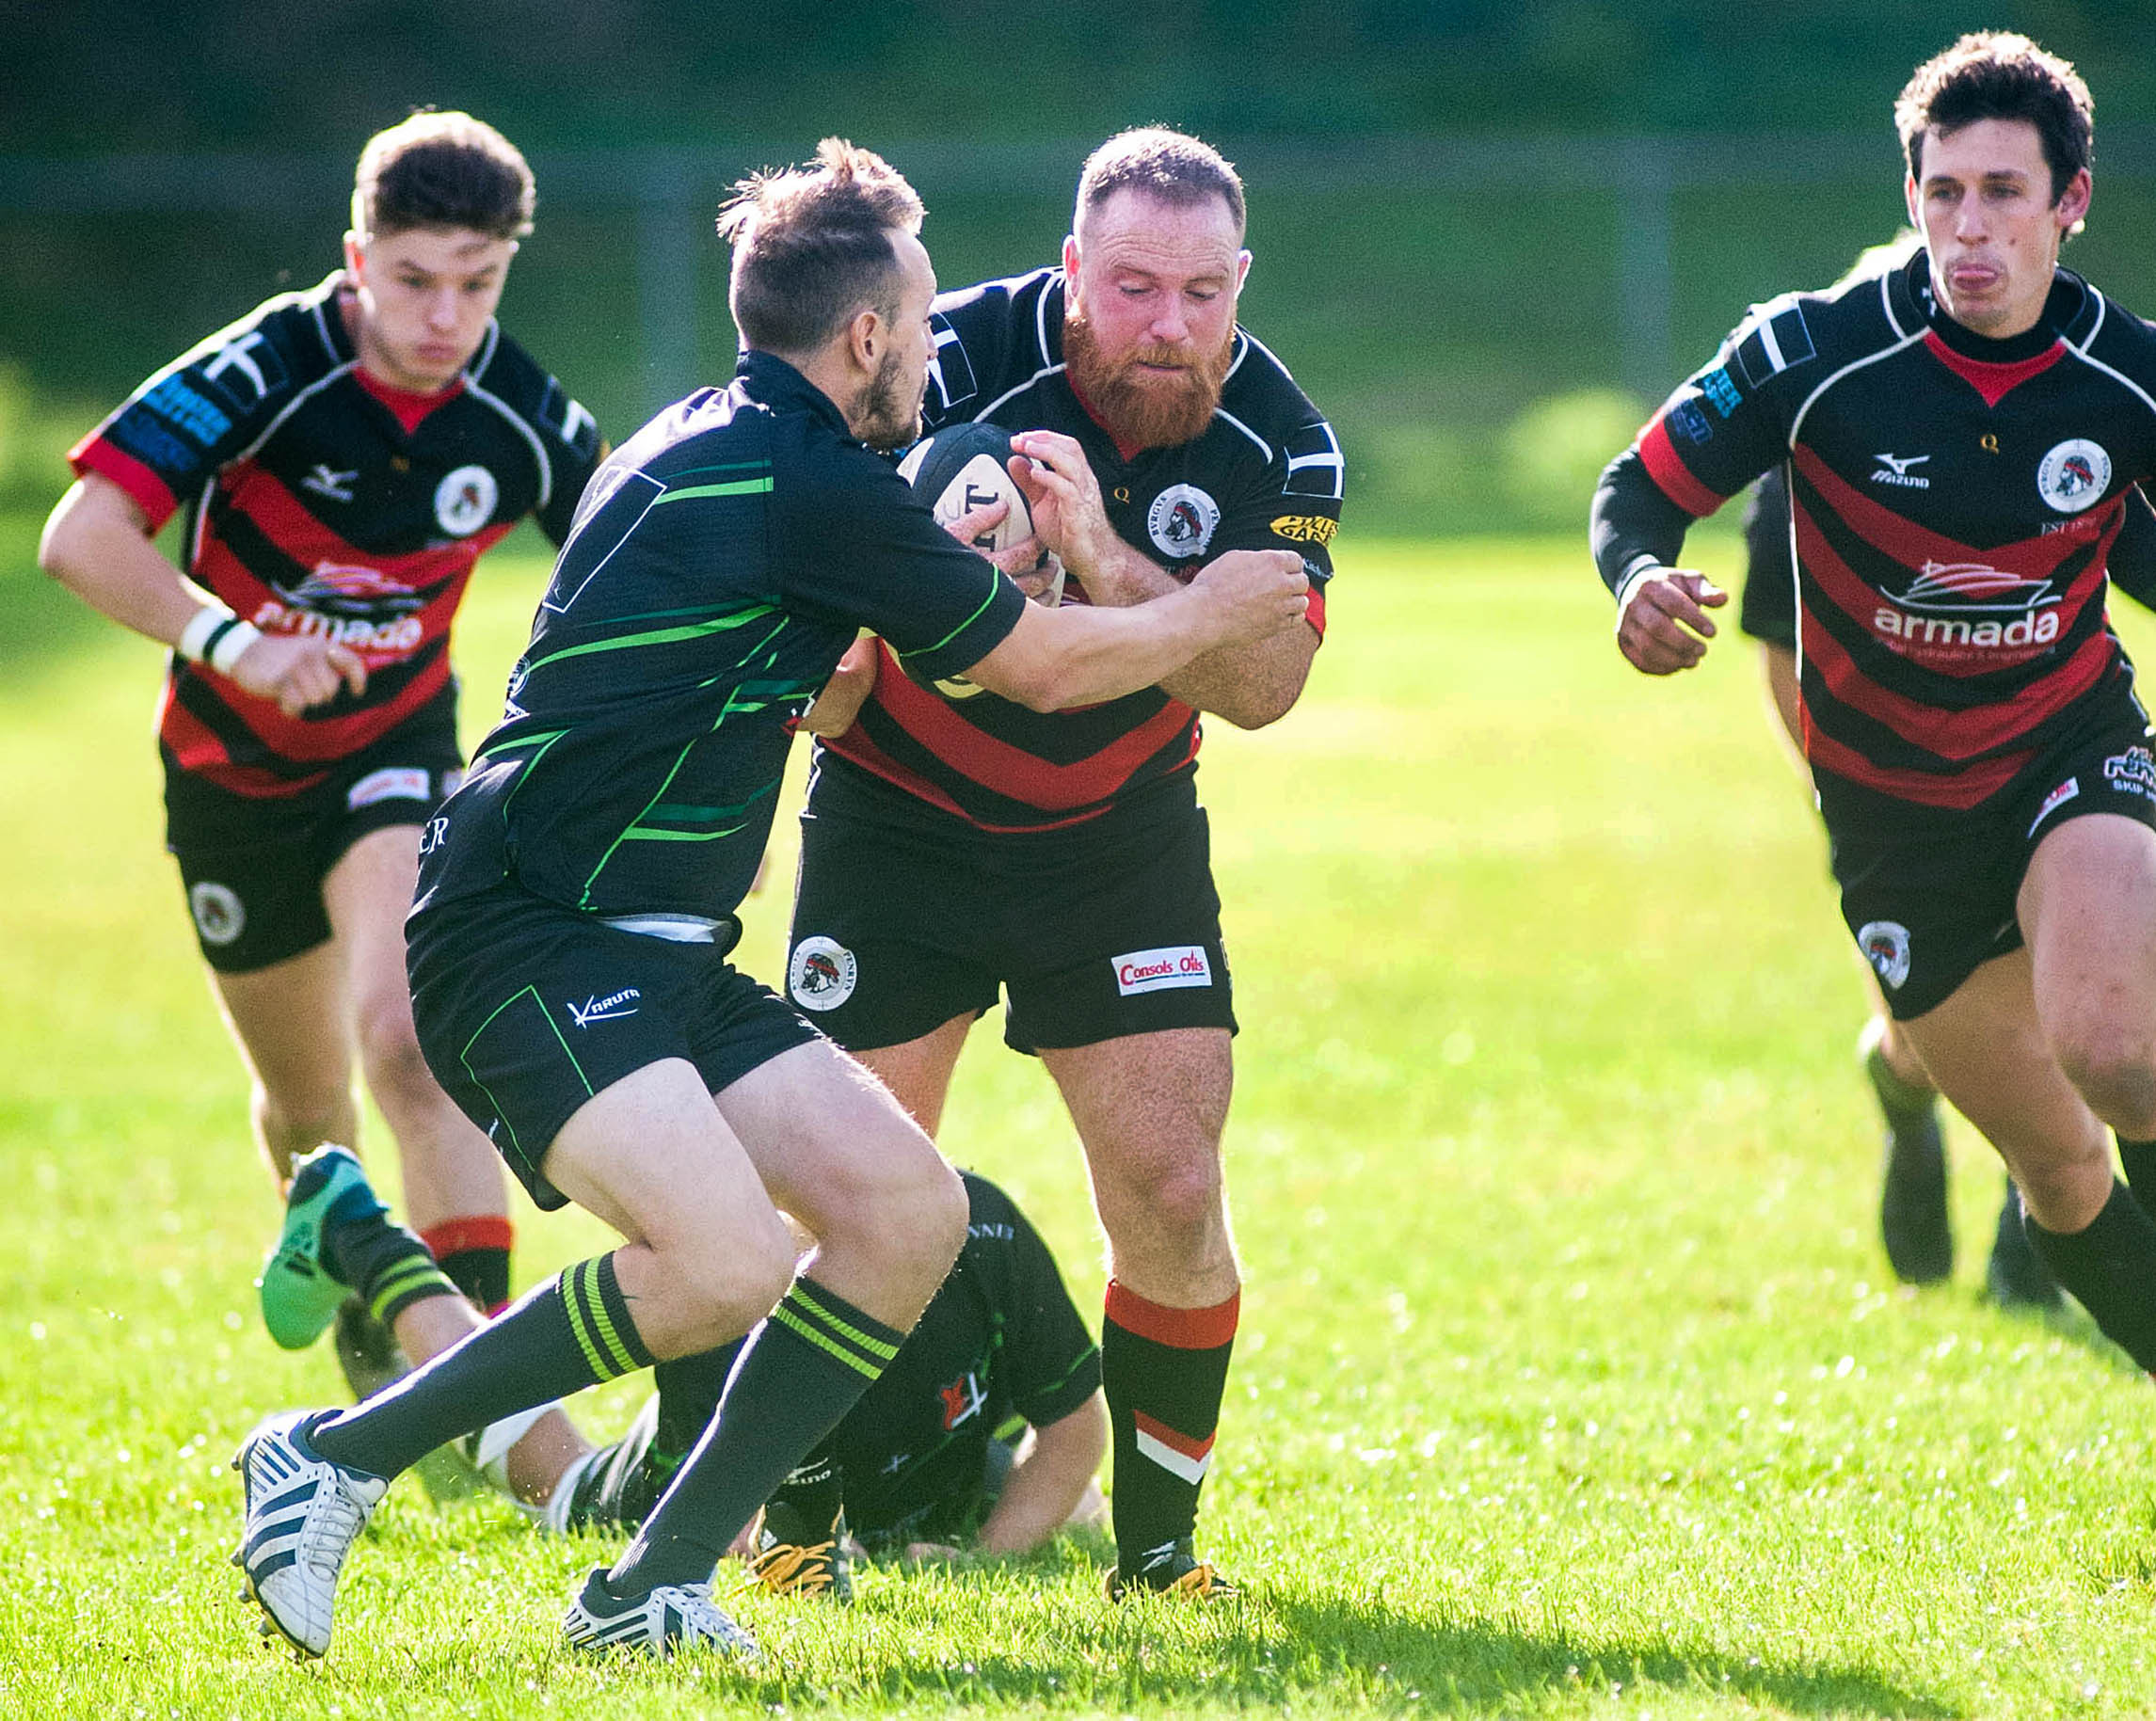 Penryn's Andrew Seviour (centre) in possession during his side's 73-14 win at home to Lanner on Saturday. Picture by Colin Higgs